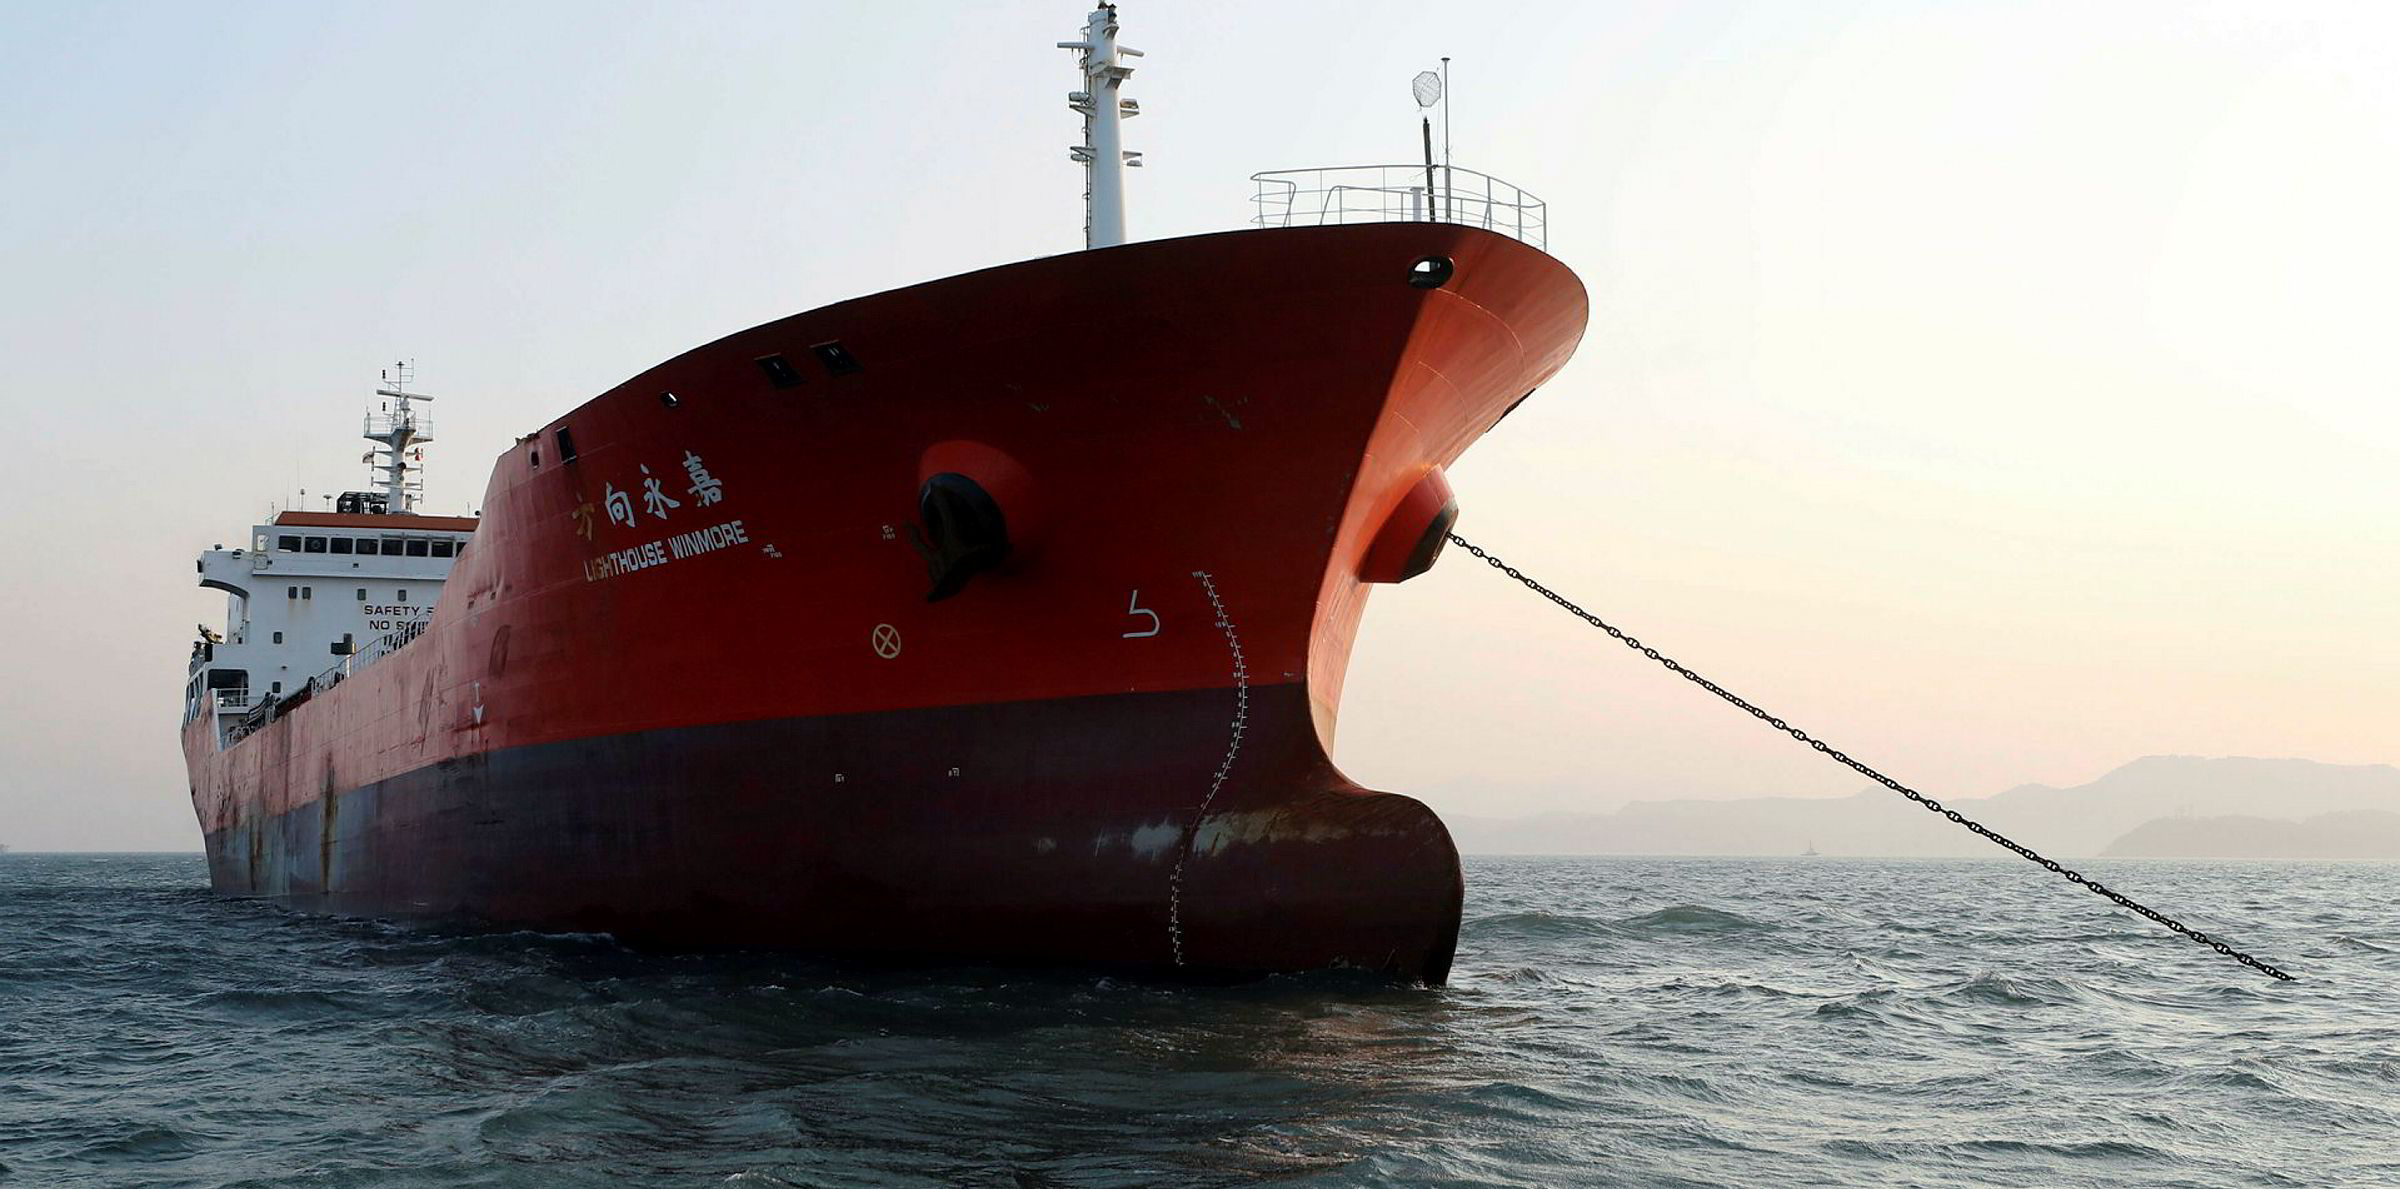 Shipowner questions Hong Kong flag over Lighthouse Winmore